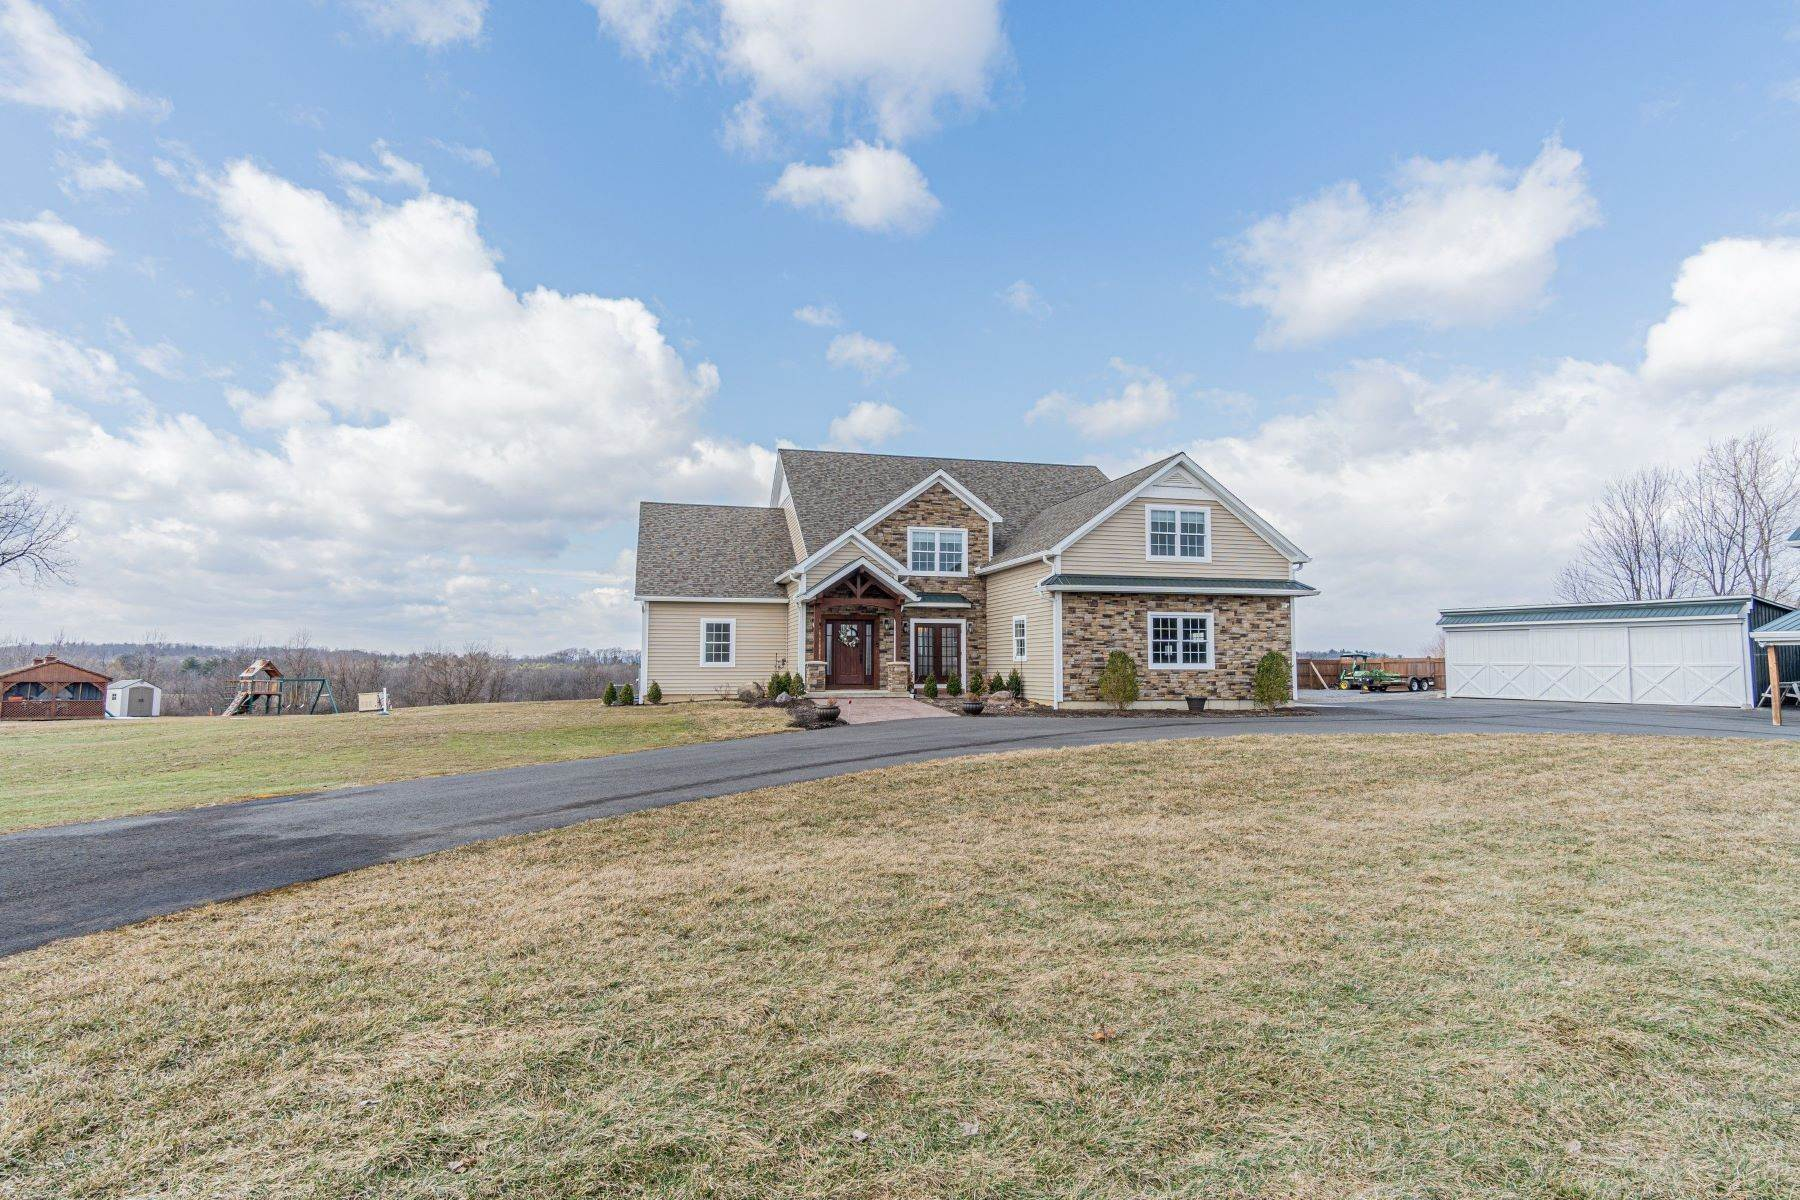 44. Single Family Homes for Sale at 1059 County Rt 70, Saratoga Tov, Ny, 12170 1059 County Rt 70 Stillwater, New York 12170 United States